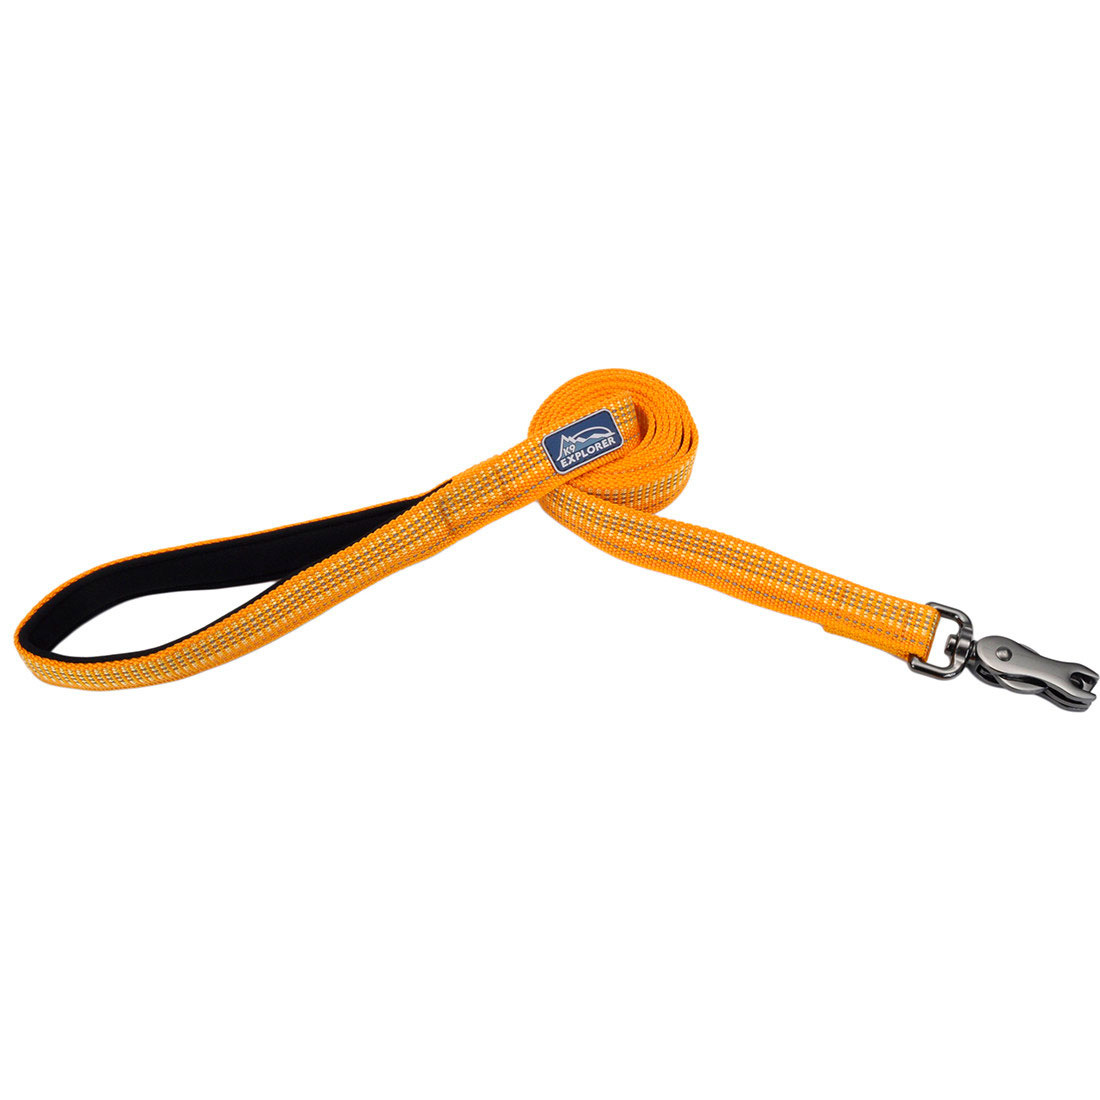 "Coastal Coastal K9 Reflective Lead 6' Desert Orange 1"" Product Image"